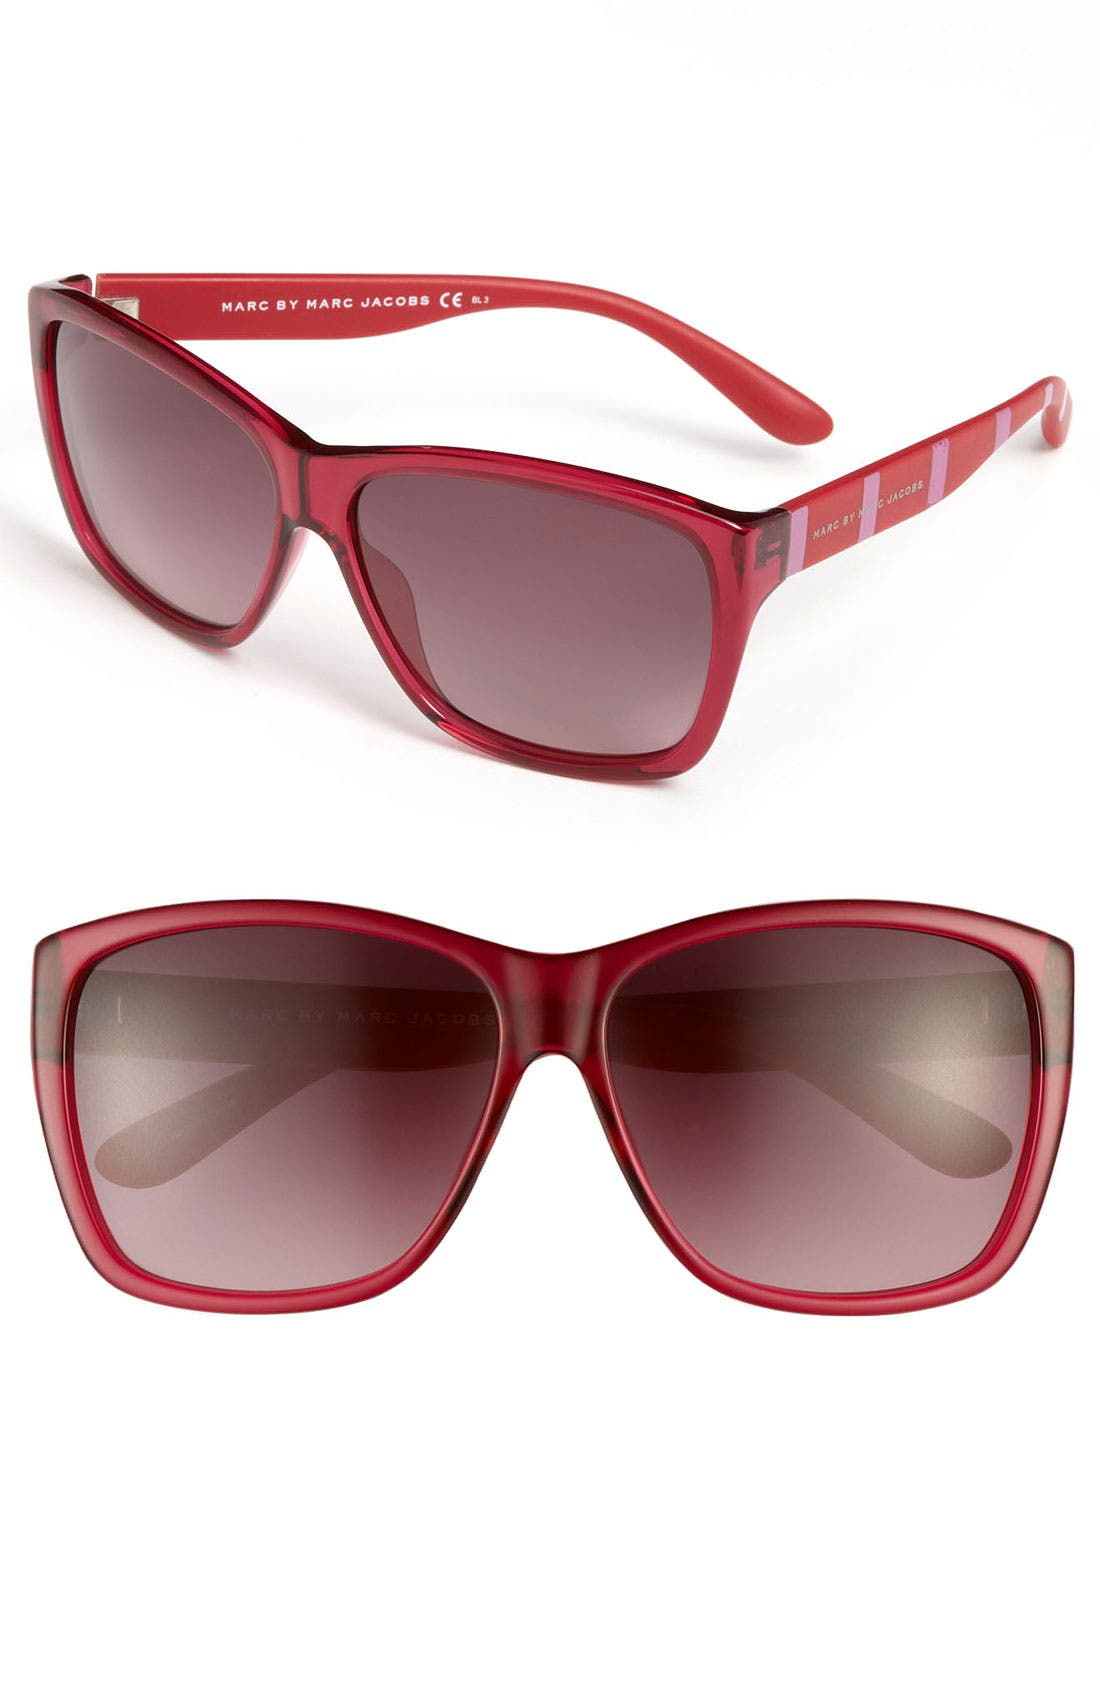 Alternate Image 1 Selected - MARC BY MARC JACOBS 59mm Sunglasses